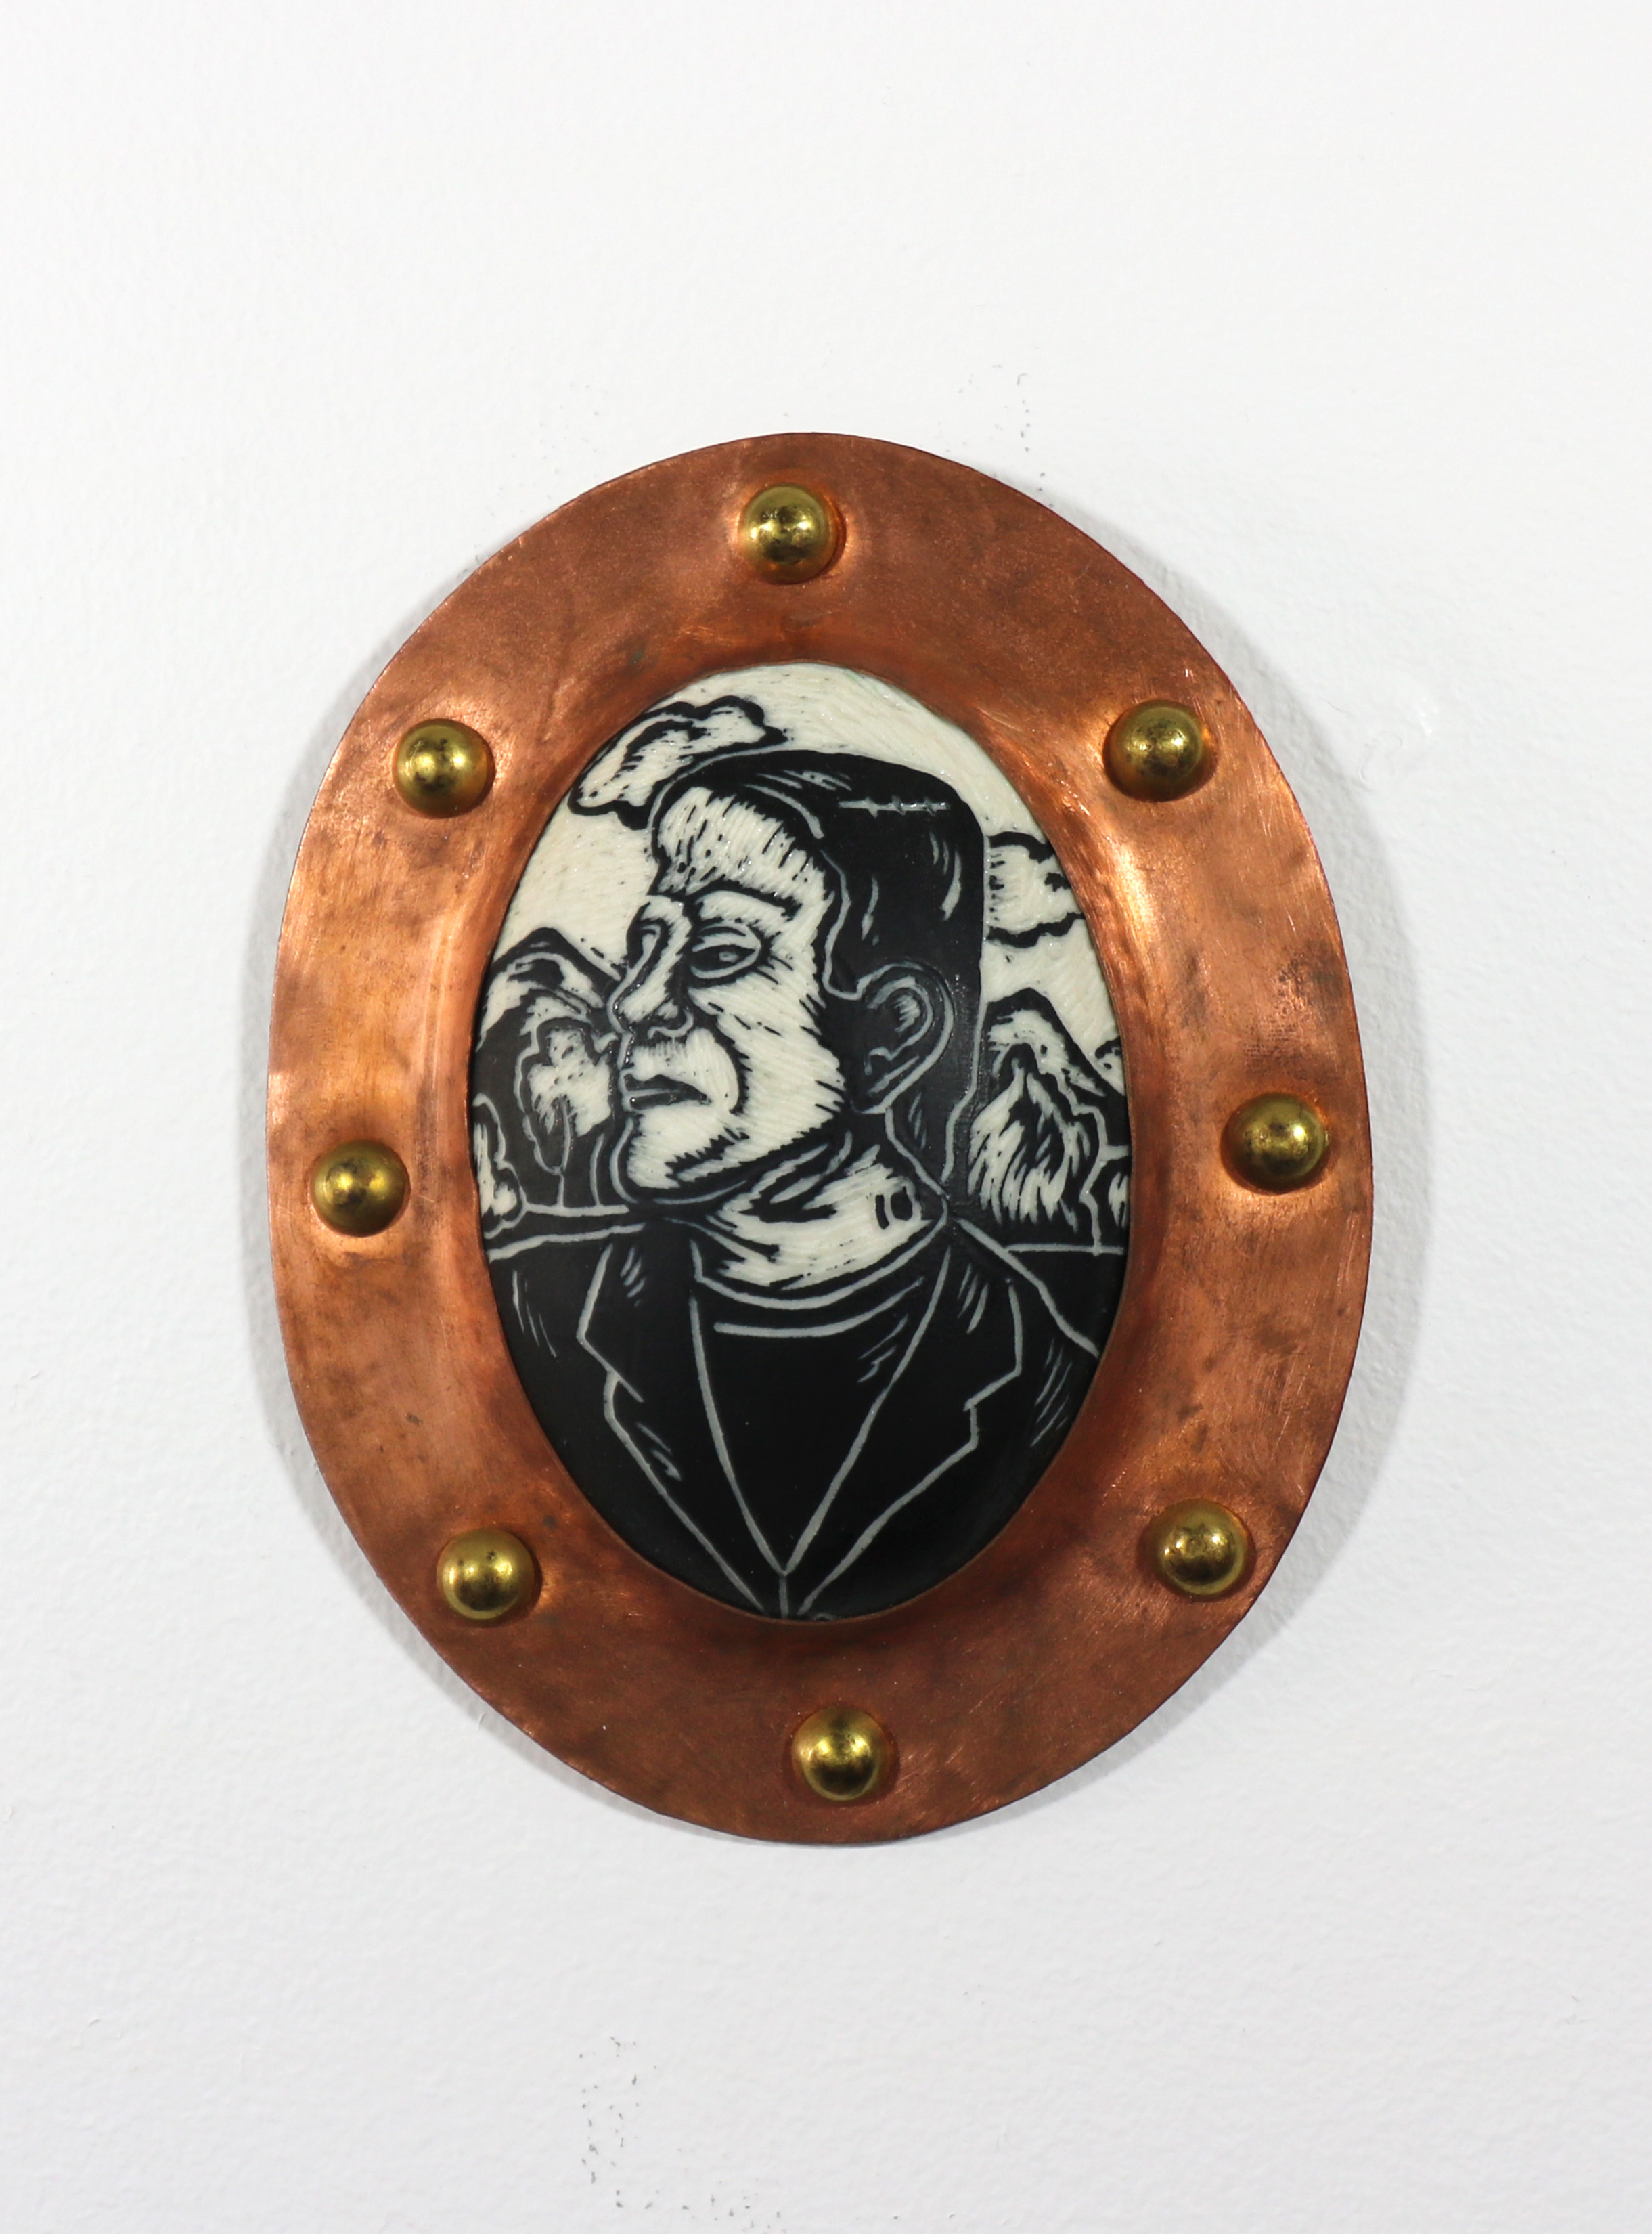 Frank_WallHanging